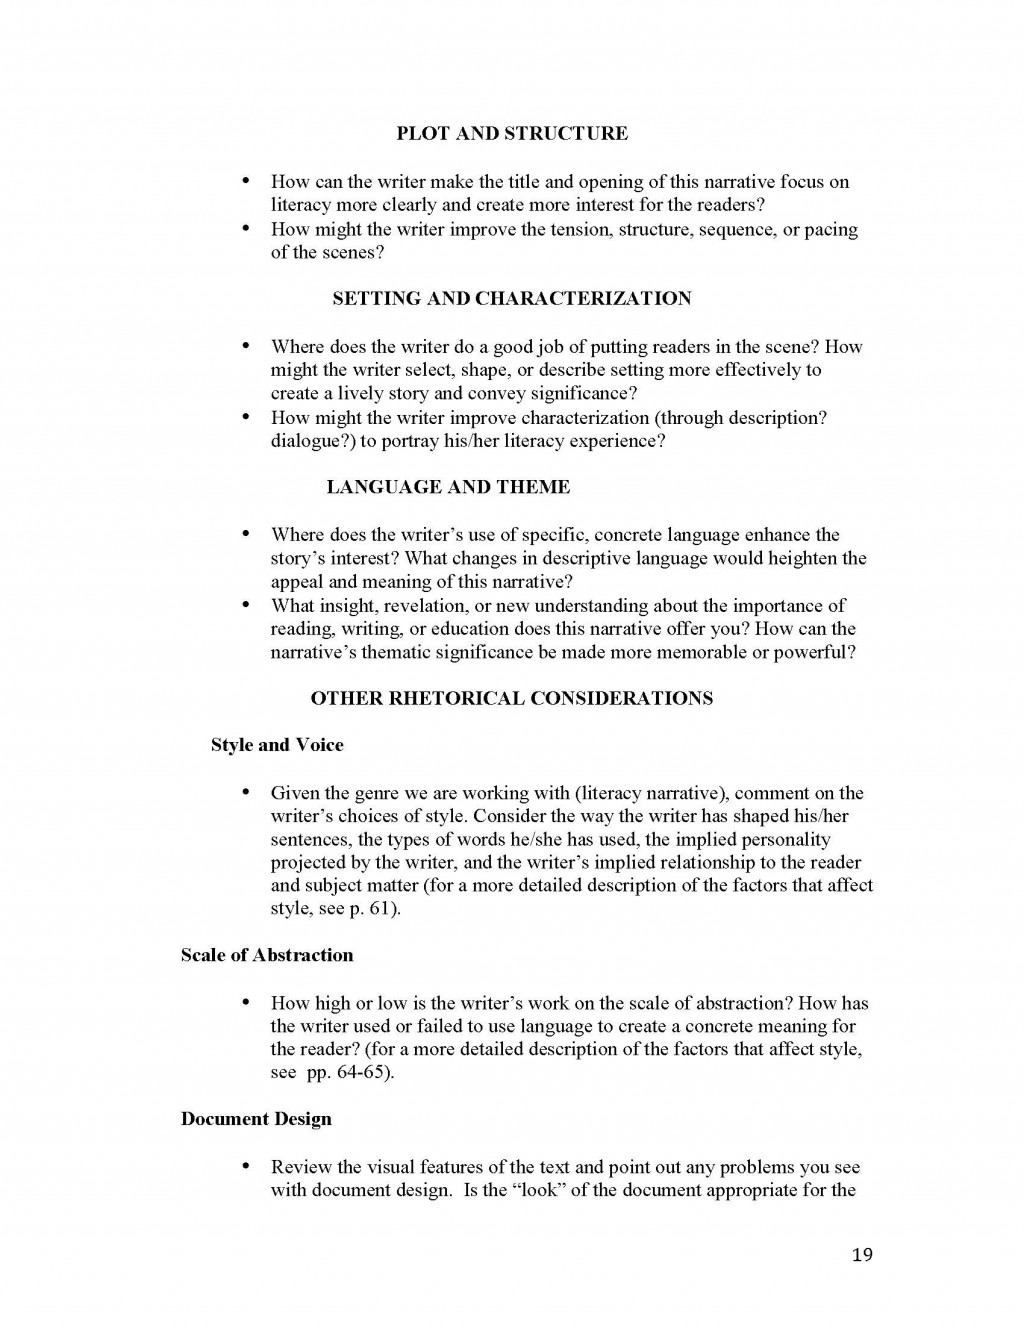 008 Unit 1 Literacy Narrative Instructor Copy Page 19 Essay Example How To Best Examples Conclusion Write Good In Exam Funny Process Large